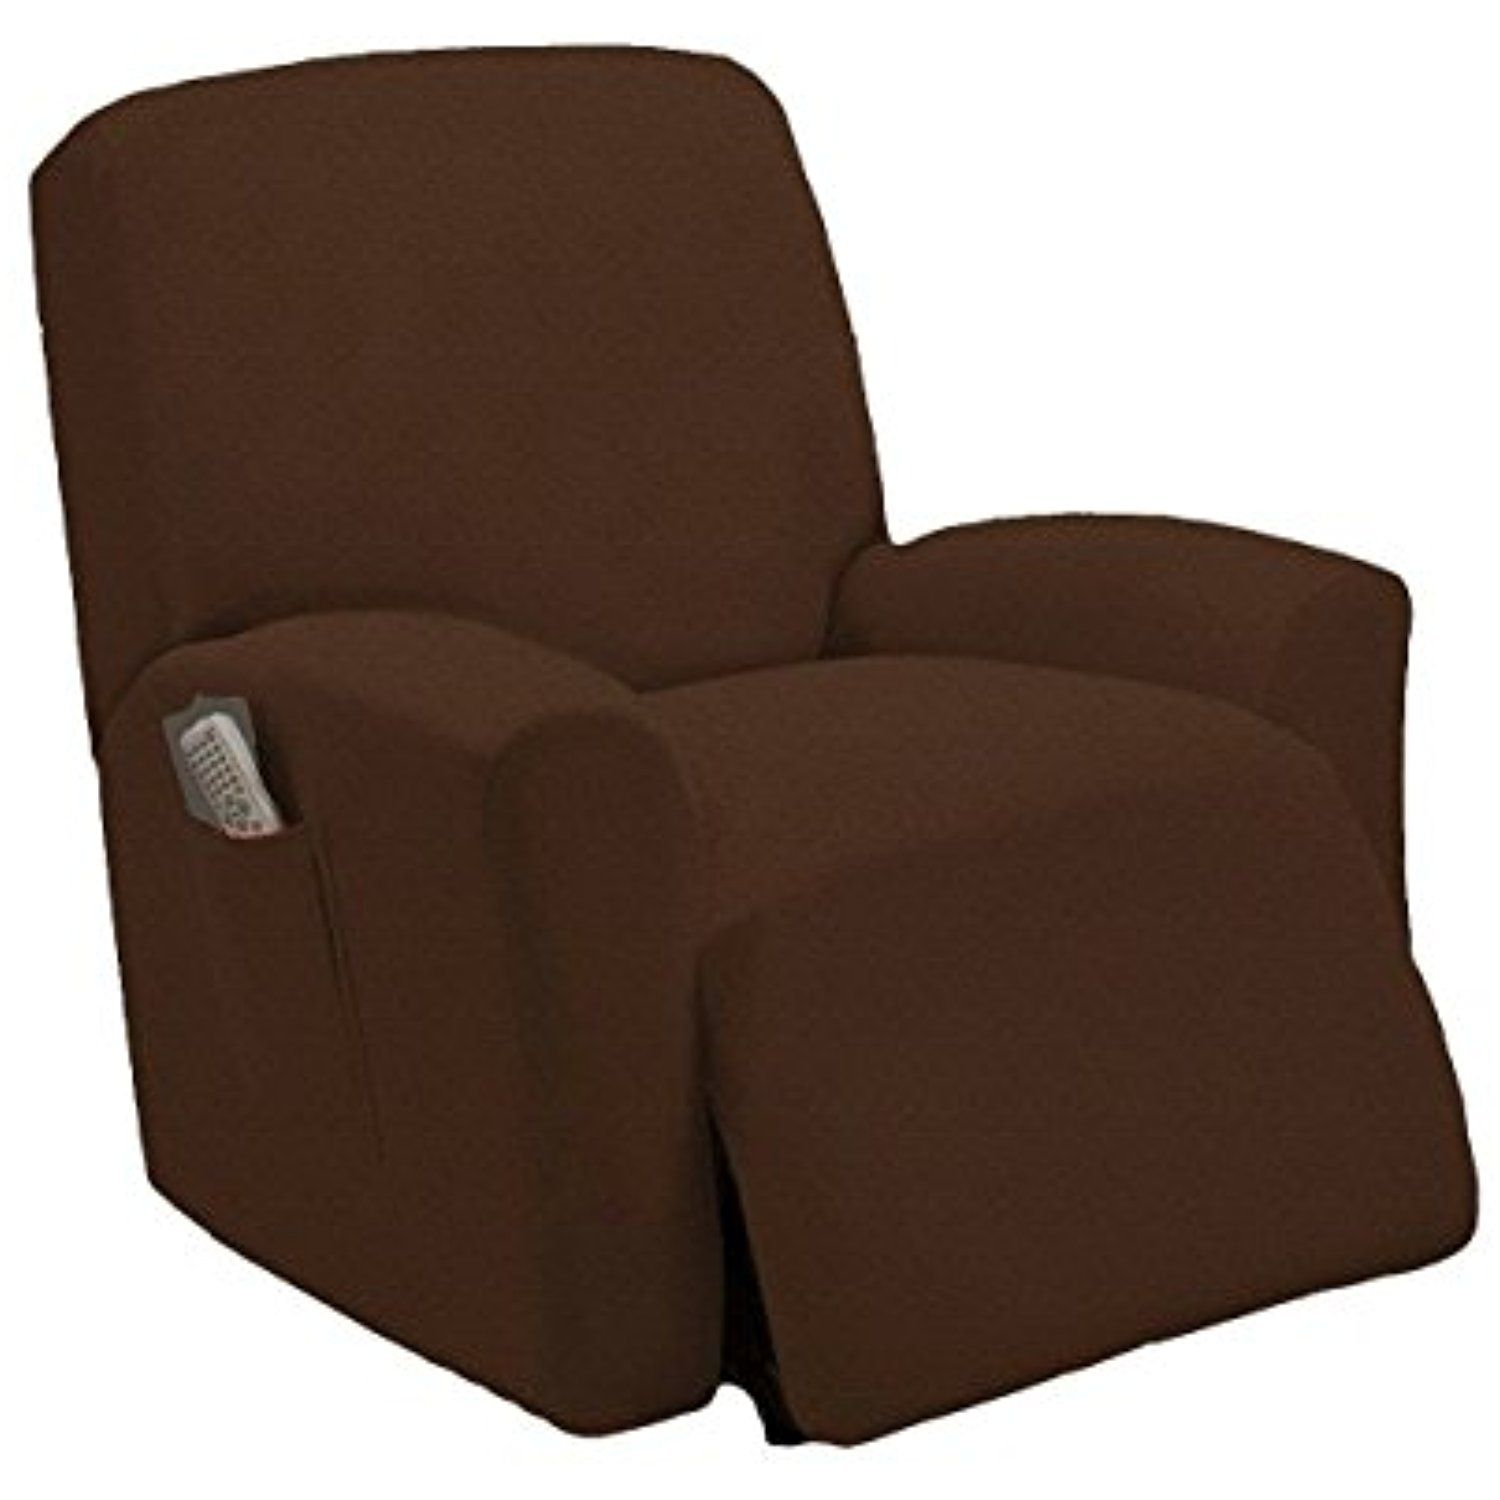 Park Art My WordPress Blog_Small Recliner Covers With Pockets